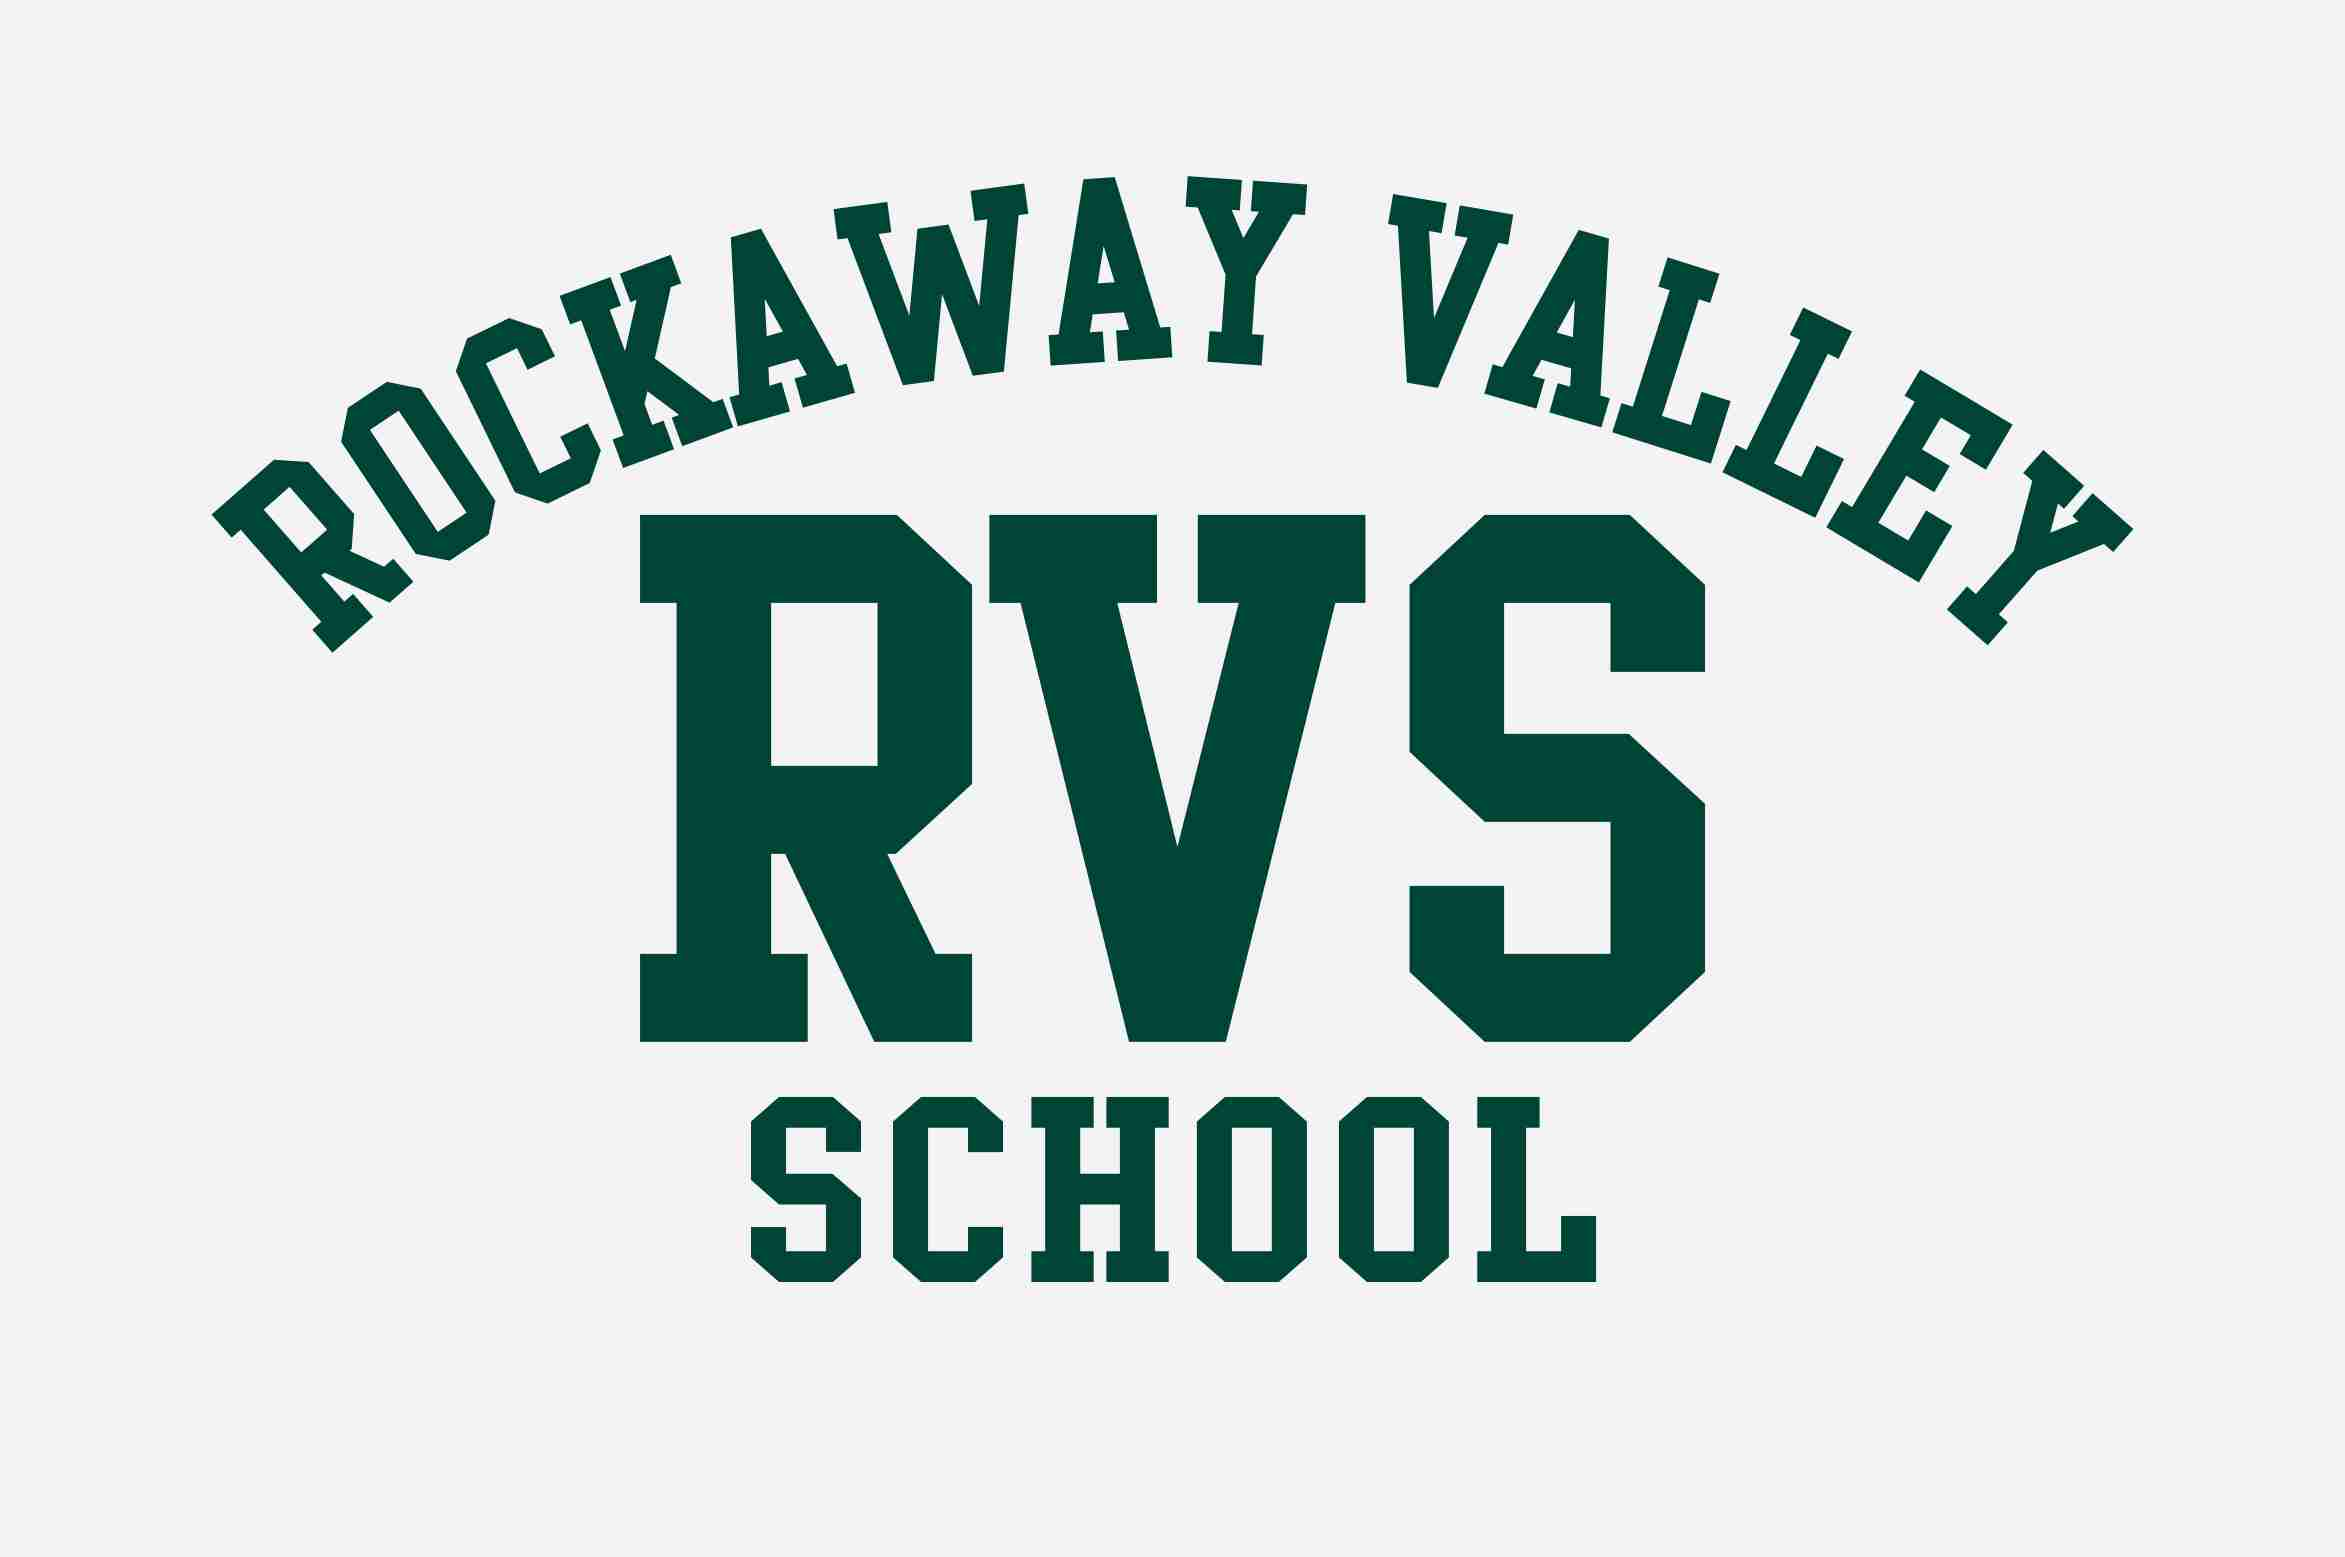 Rockaway Valley School